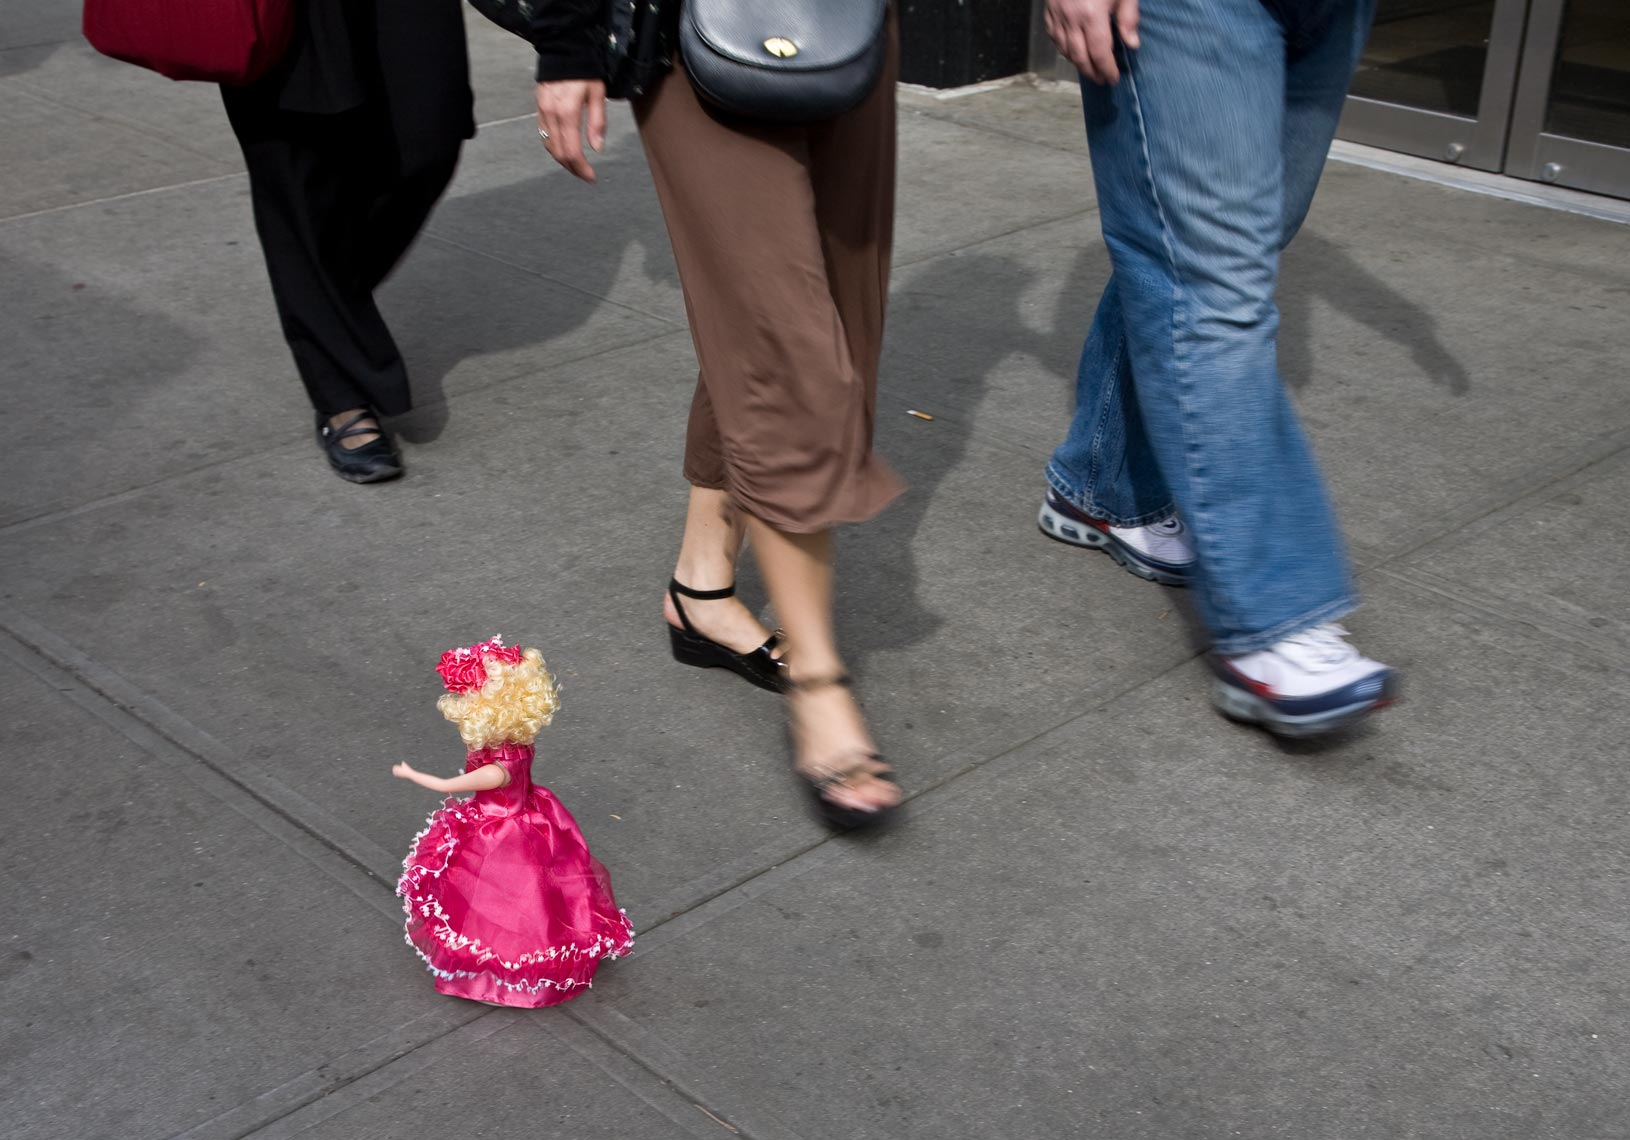 Doll and sidewalk walkers